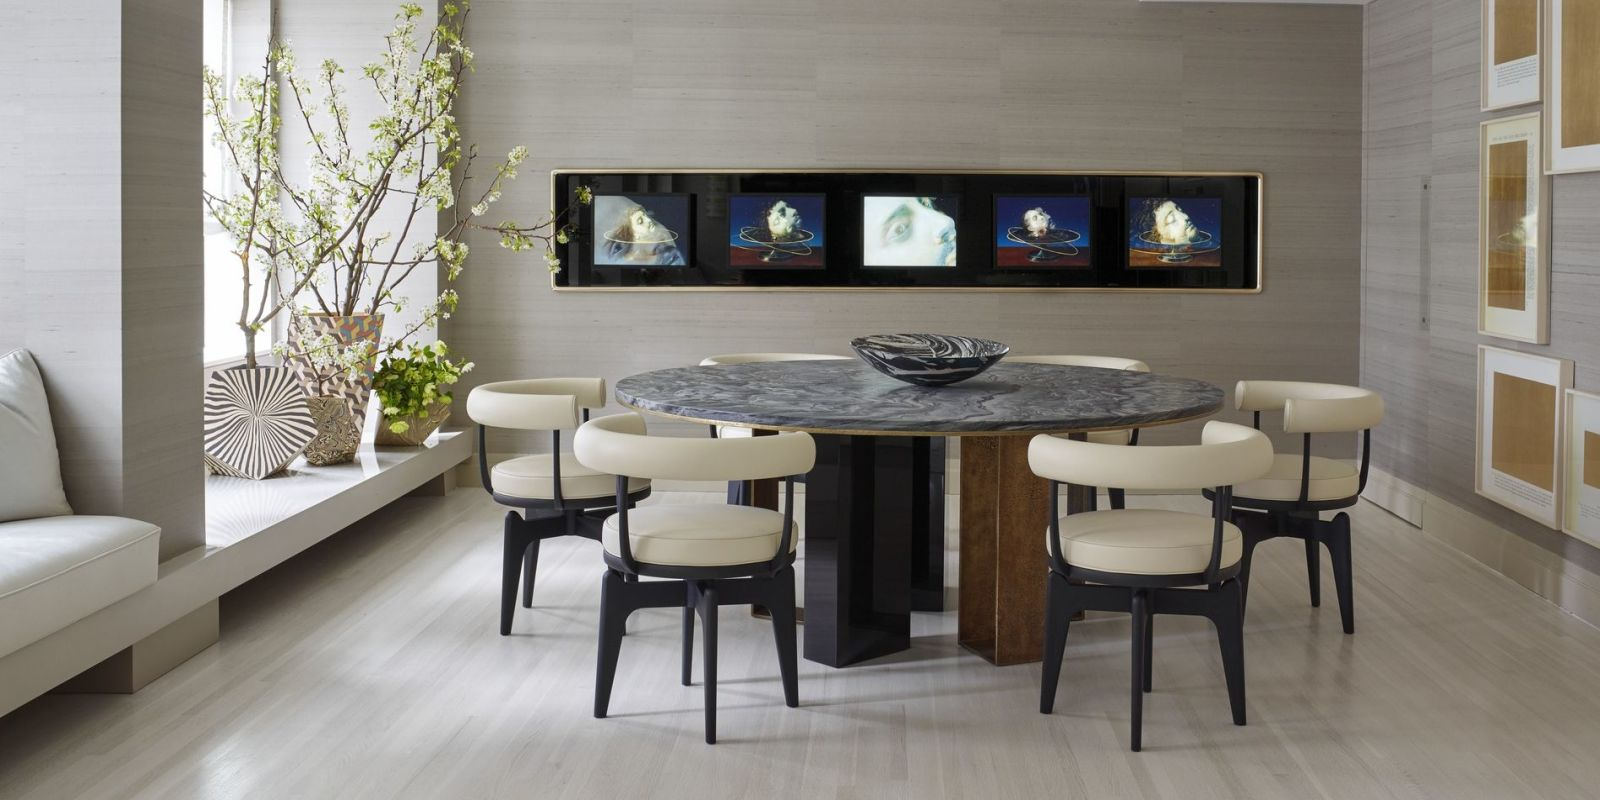 25 modern dining room decorating ideas contemporary dining room